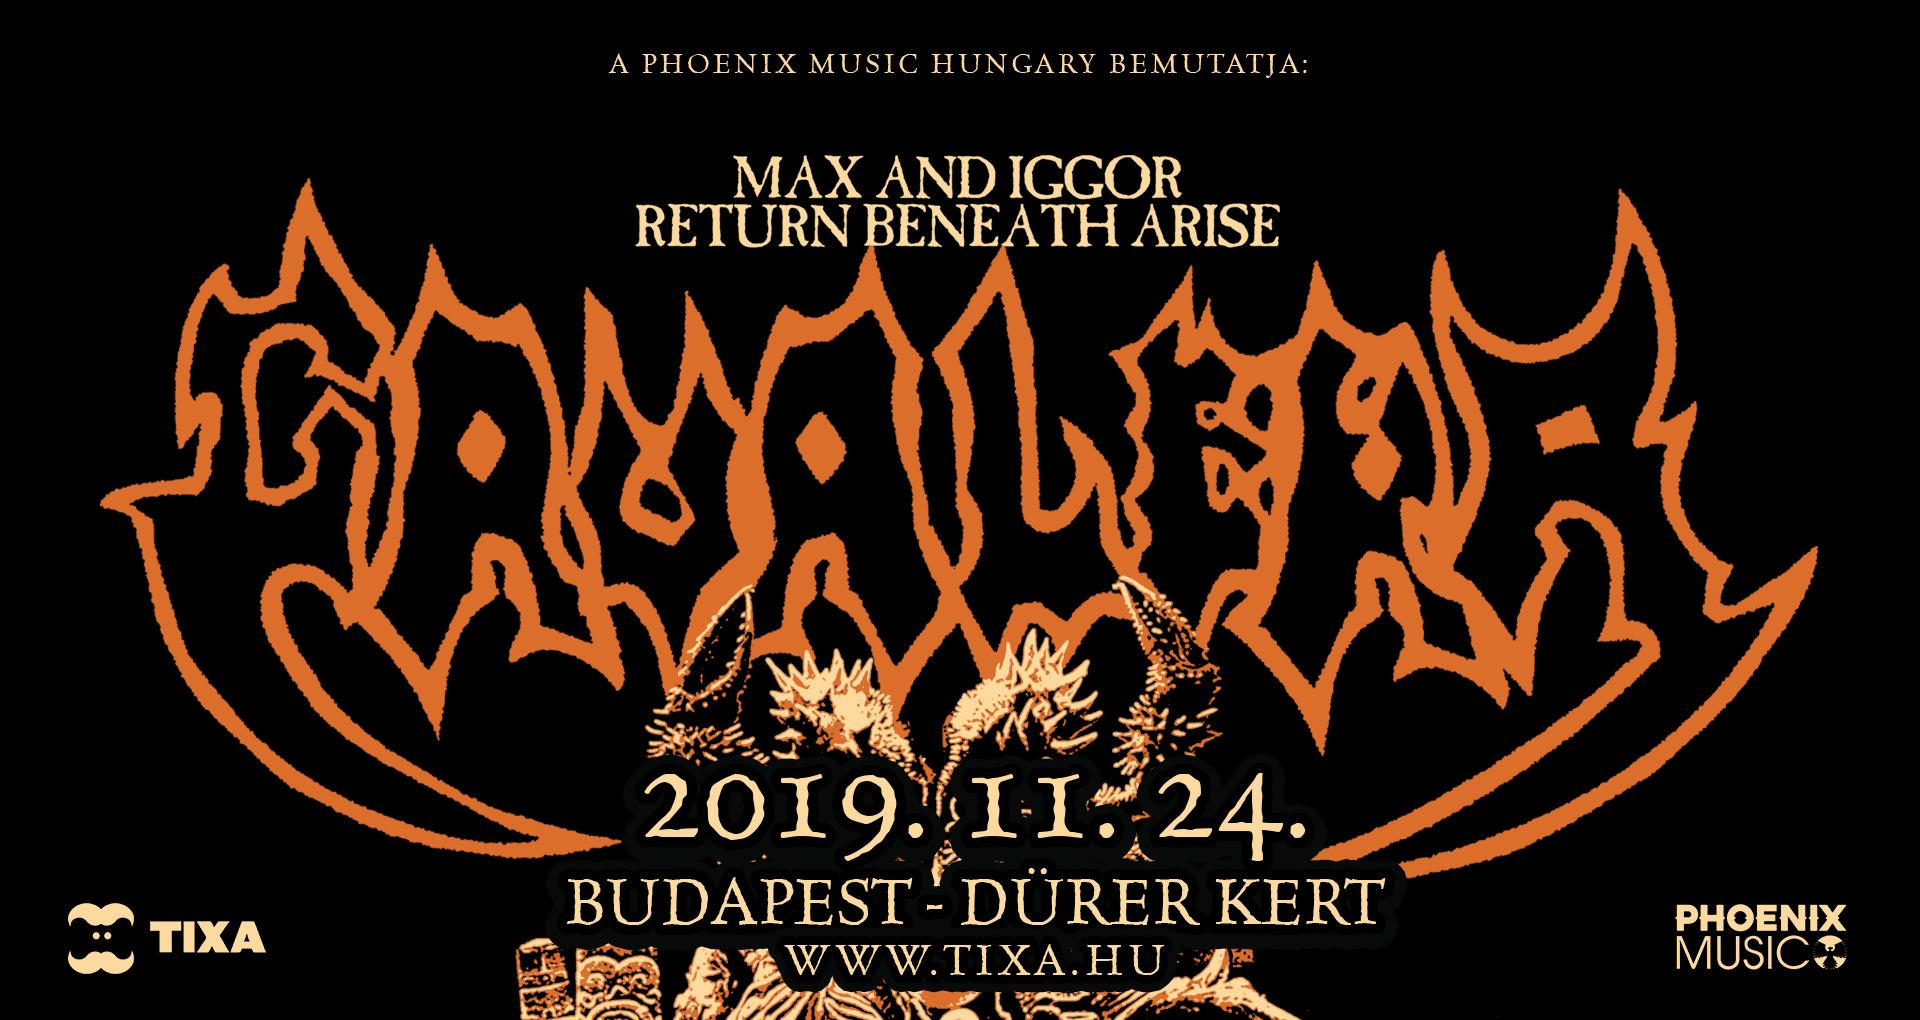 MAX AND IGGOR CAVALERA RETURN TO BENEATH AND ARISE, Dürer Kert, Budapest, 24.11.2019.